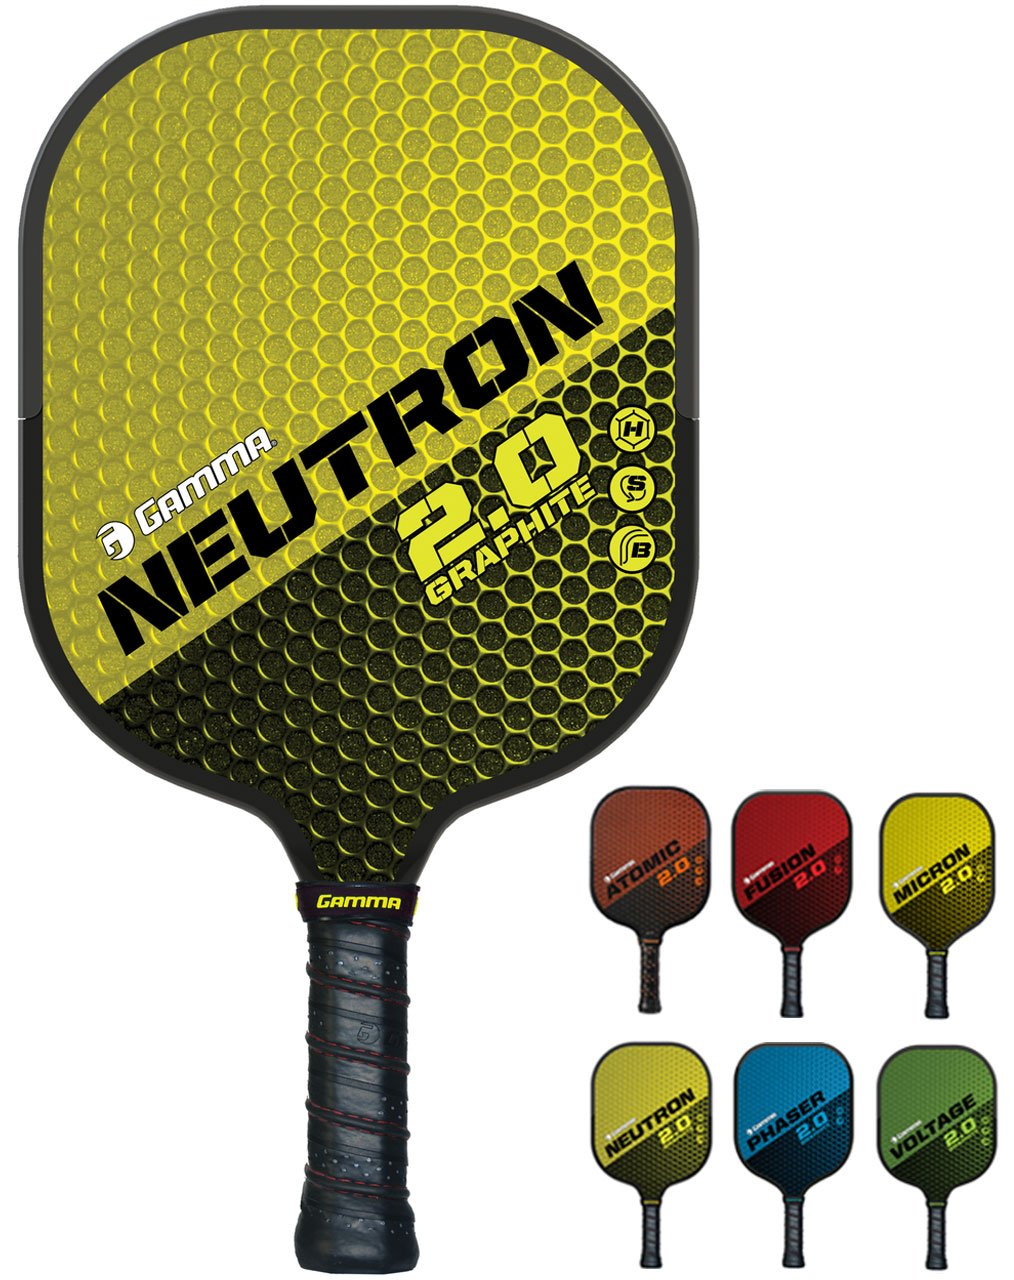 GAMMA Sports 2.0 Pickleball Paddles: Neutron 2.0 Pickleball Rackets - Textured Graphite Face - Mens and Womens Pickle Ball Racquet - Indoor and Outdoor Racket - Yellow Pickle-Ball Paddle - 7 oz by Gamma